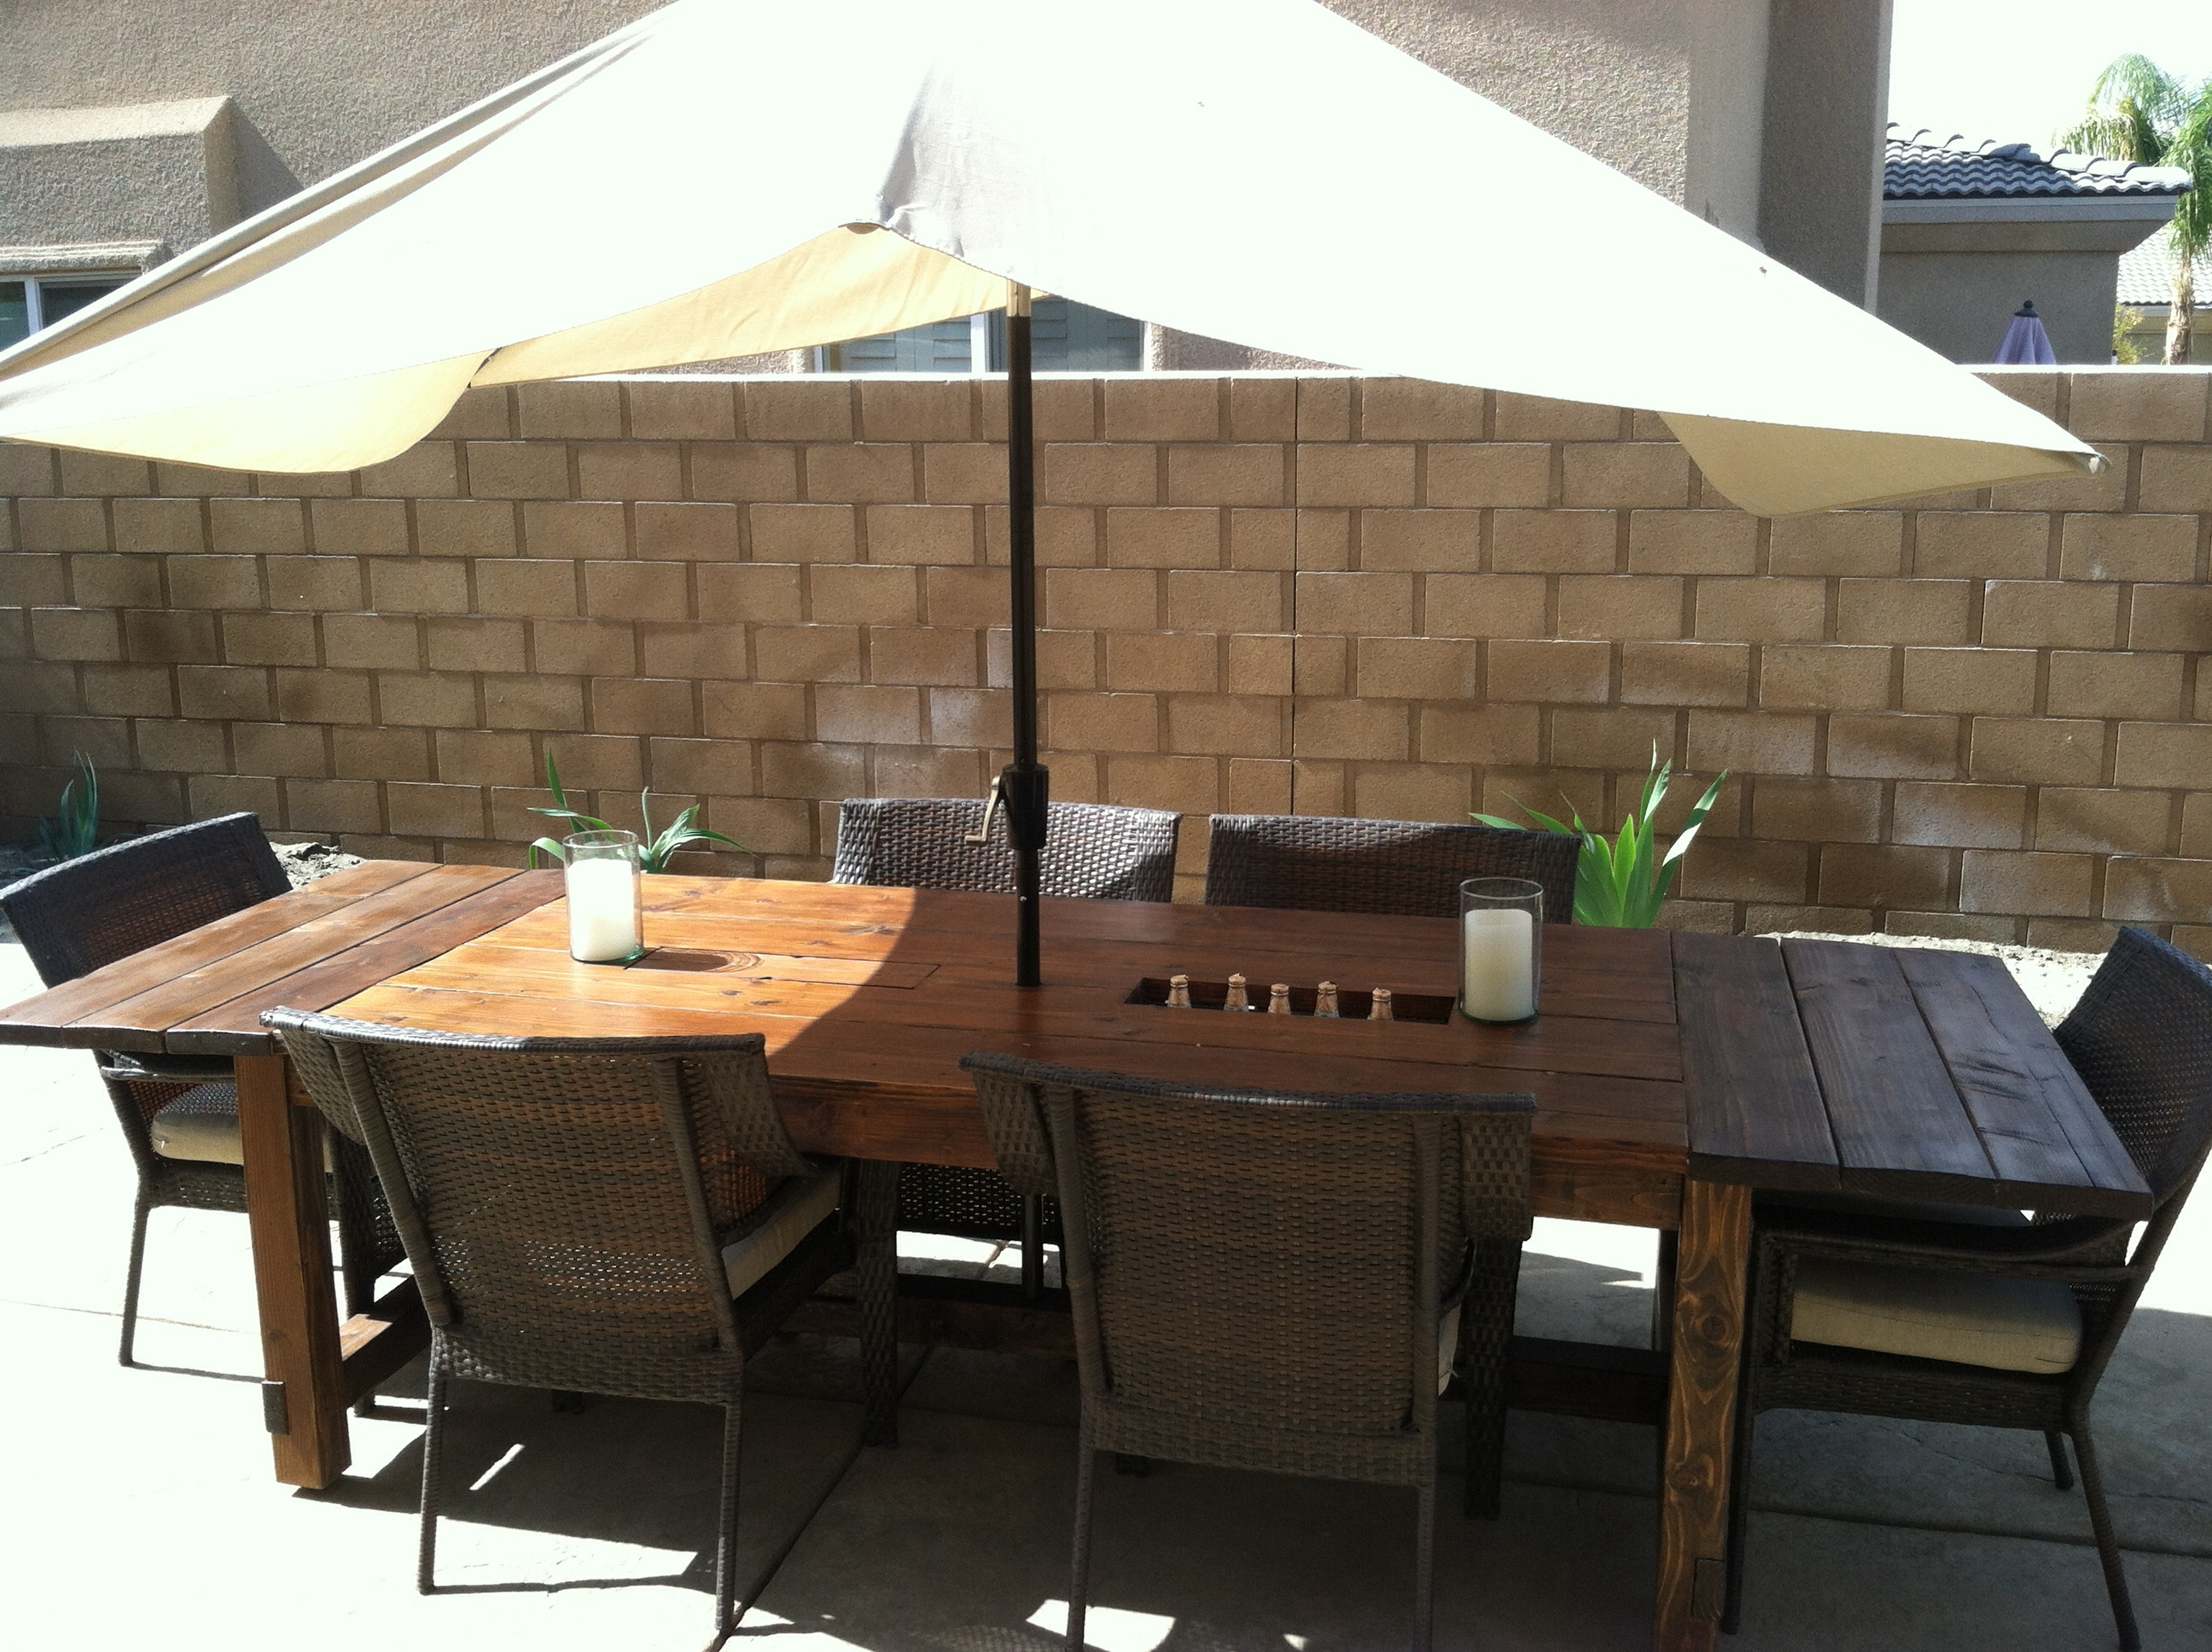 Preferred Walmart Patio Table With Umbrella Hole Intended For Patio Furniture Sets With Umbrellas (View 17 of 20)